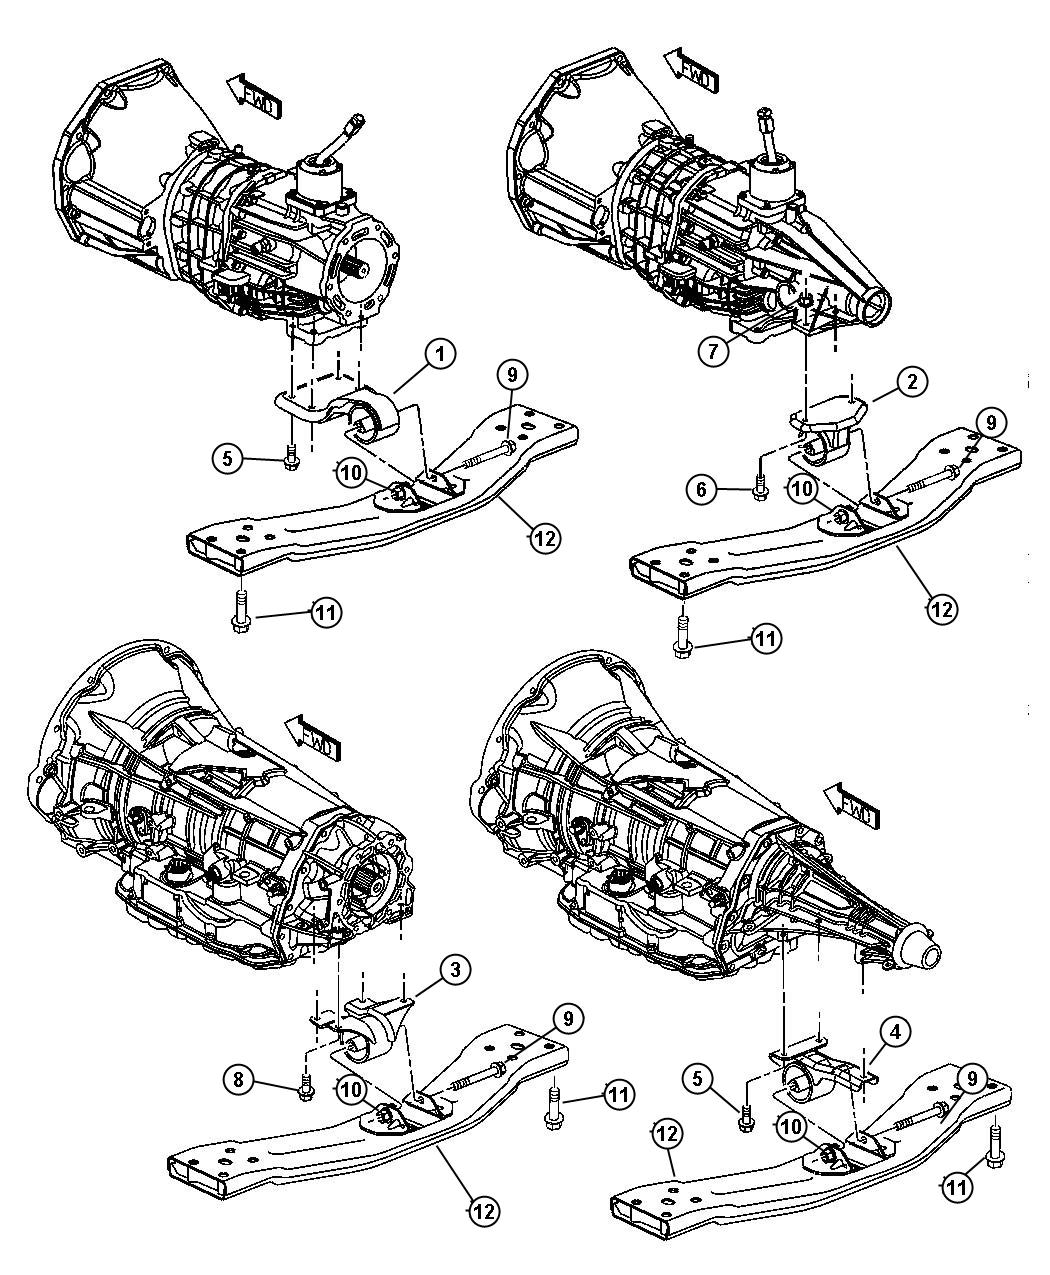 chrysler 2005 3 8 v6 engine diagram